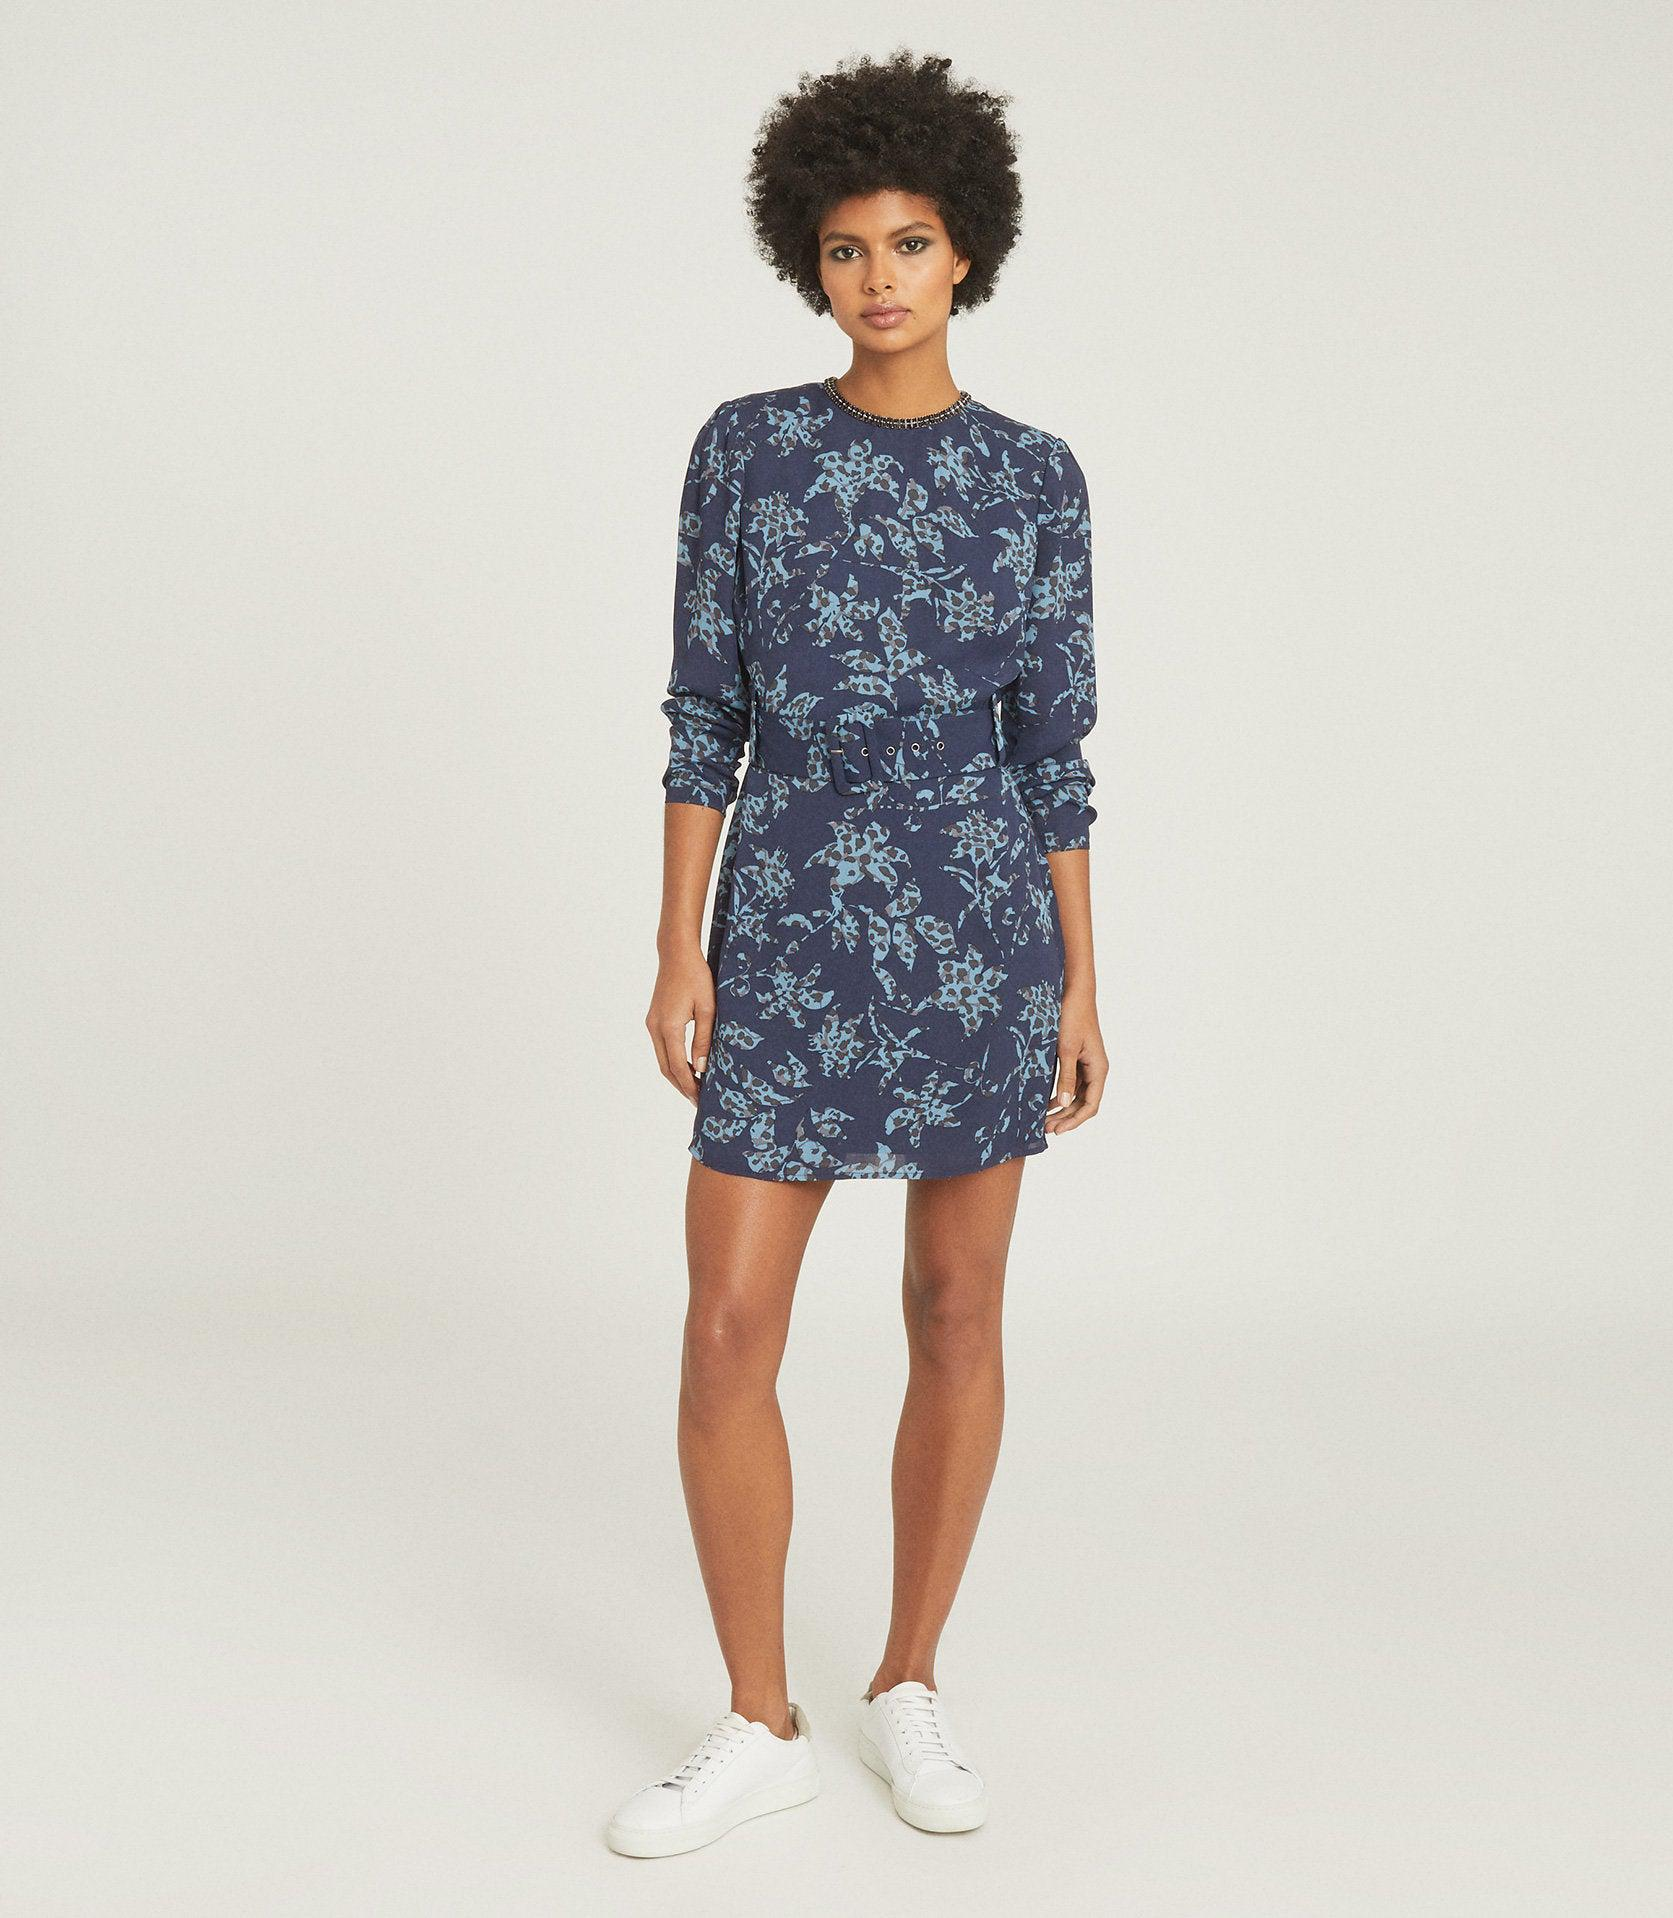 MELODY - PRINTED DRESS WITH EMBELLISHMENT DETAIL